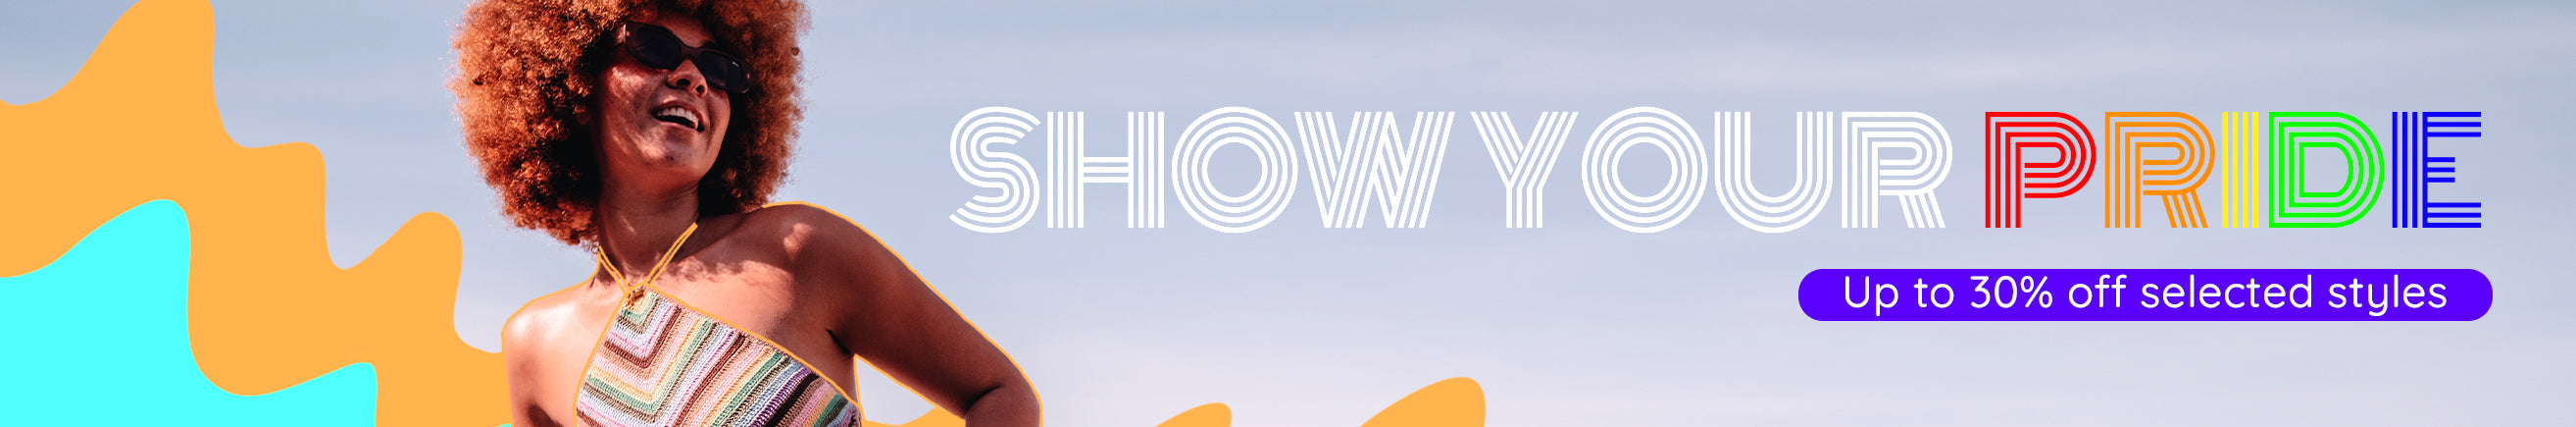 Show Your Pride Landing Page Banner